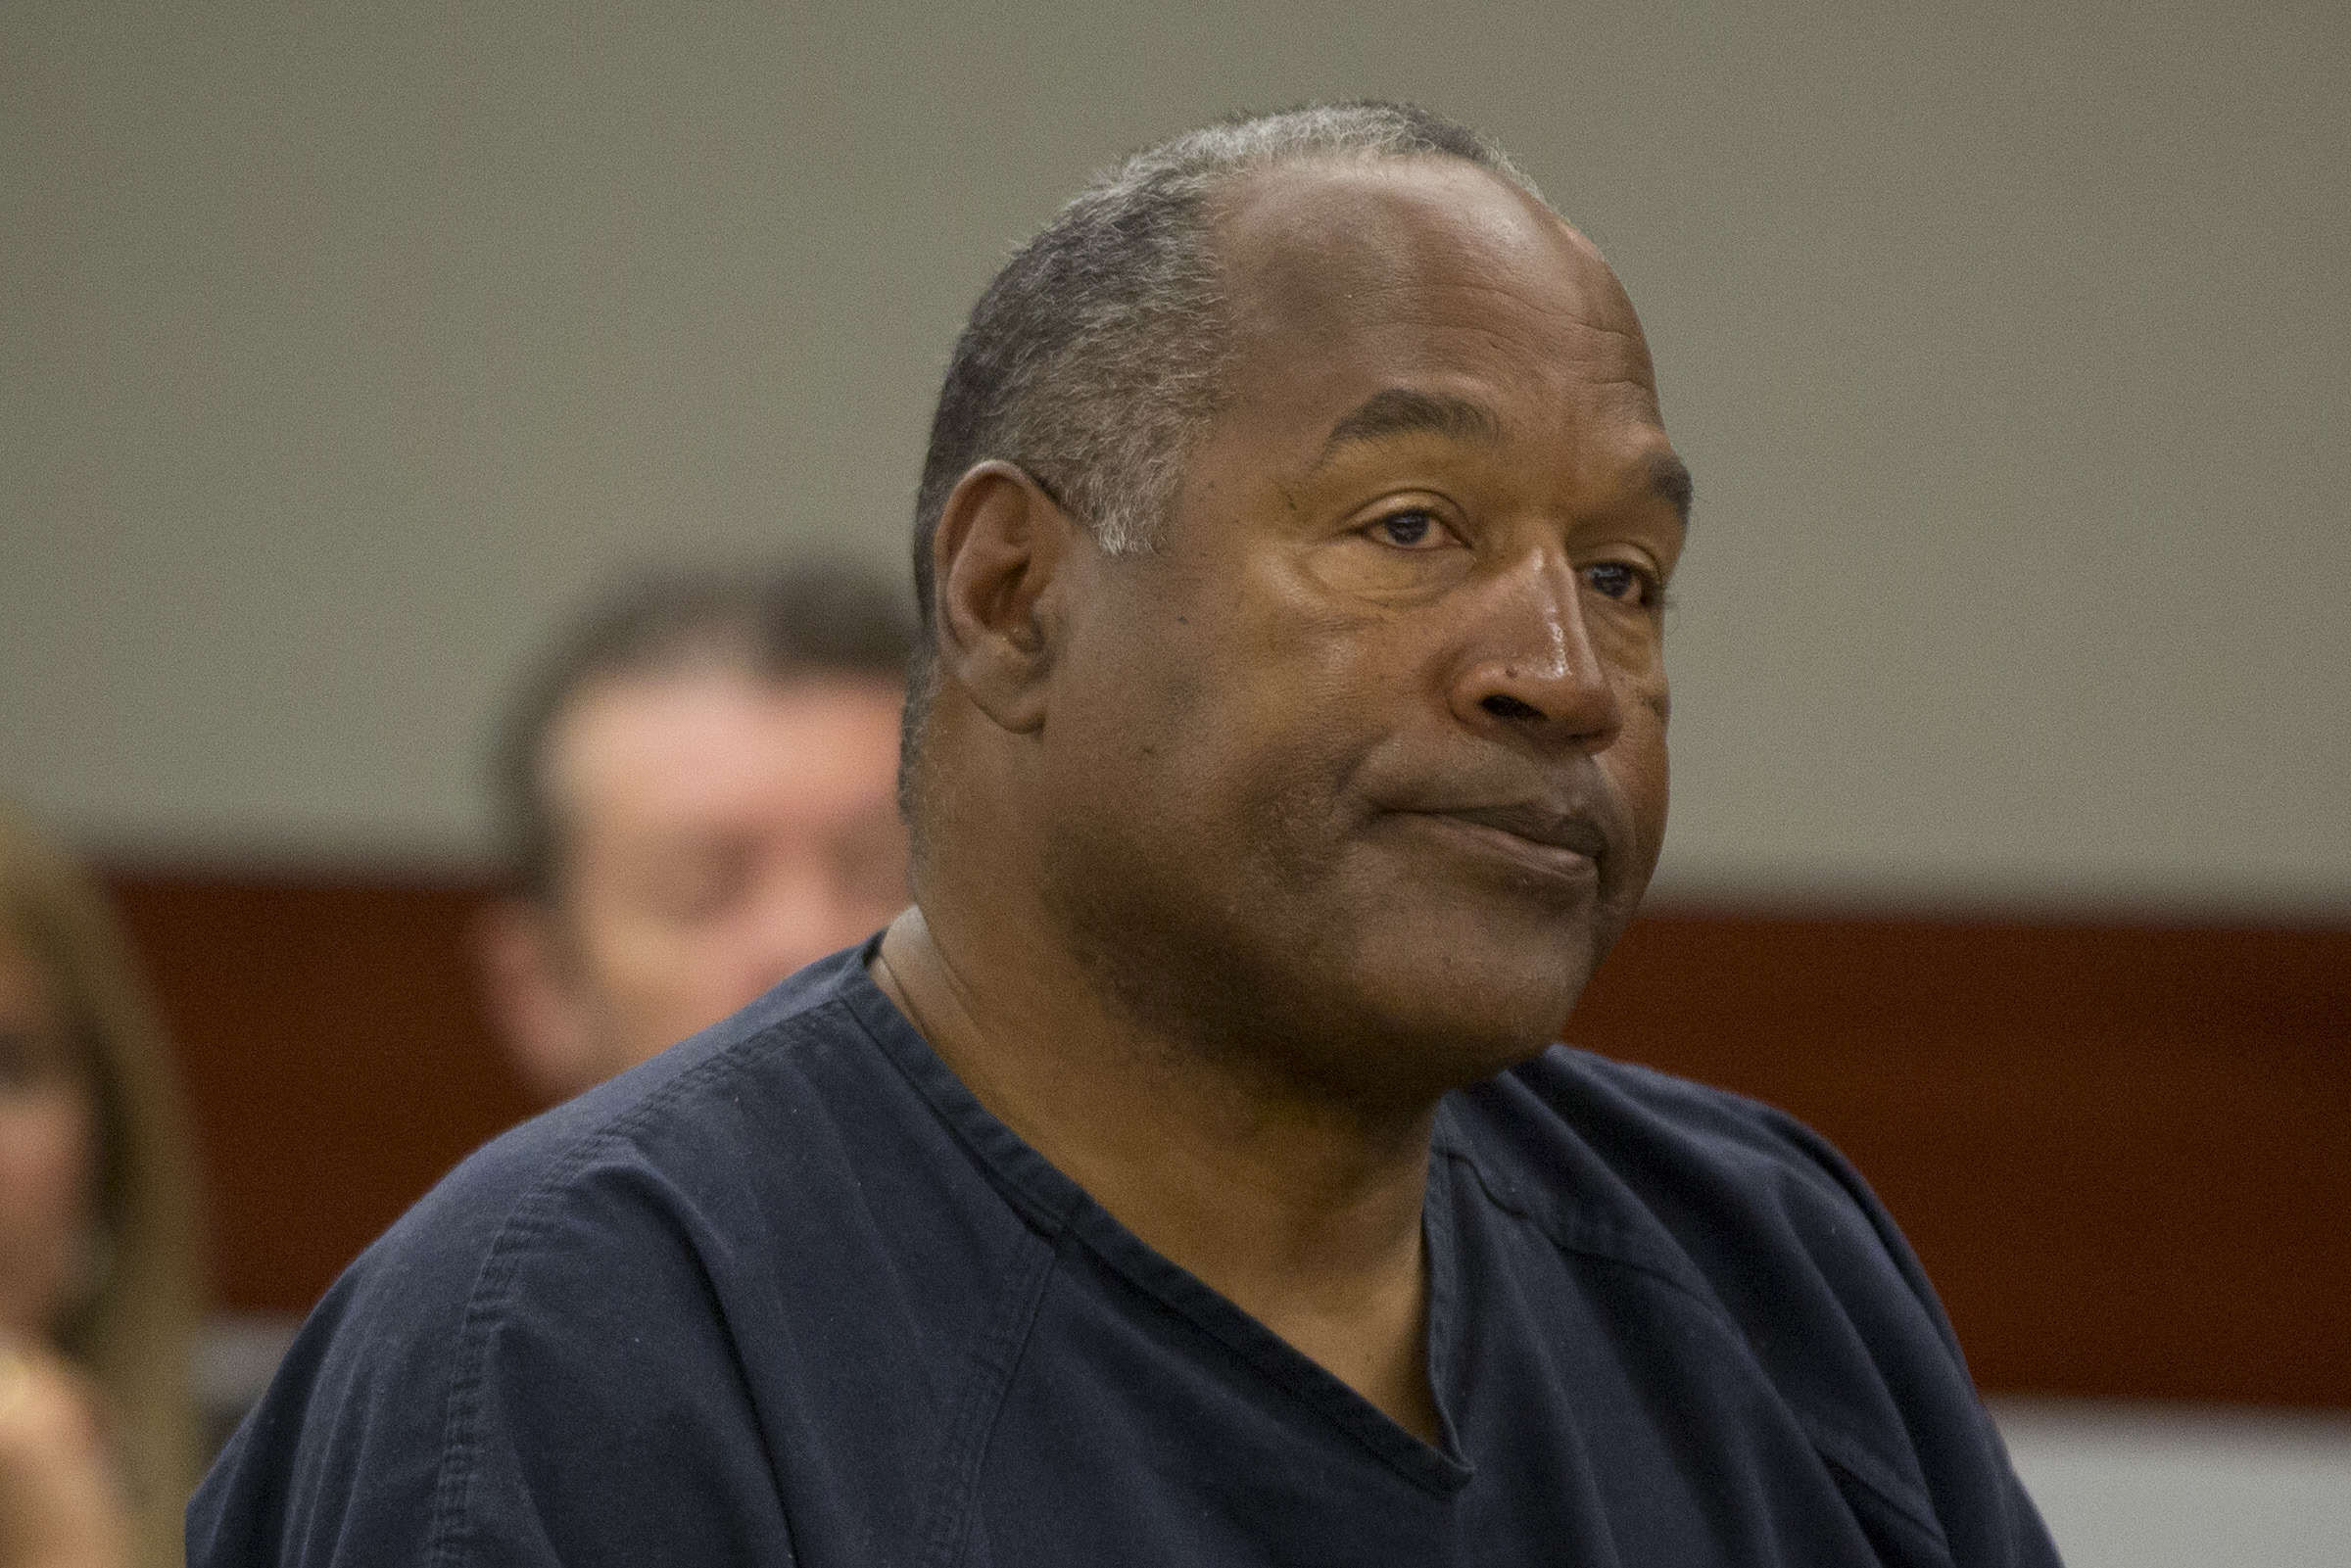 O.J. Simpson Could Be About To Confess To 1994 Murder ojsimpson1